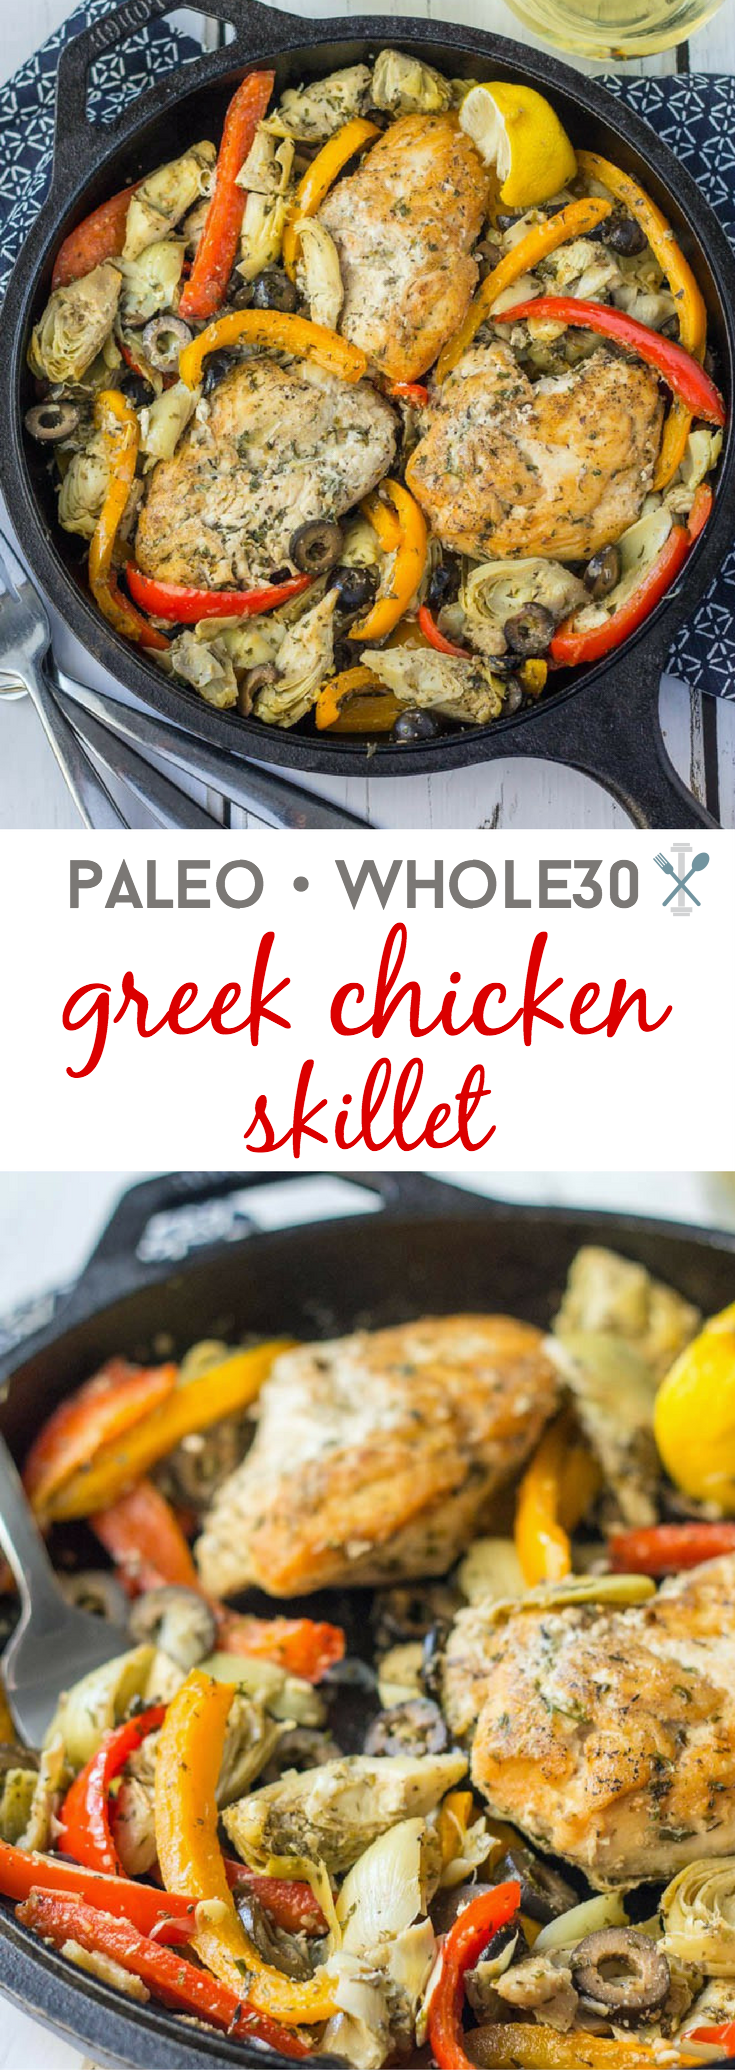 Dinner in under 30 minutes - this Whole30 easy paleo Greek chicken skillet is an amazing one-pot meal the entire family will love.